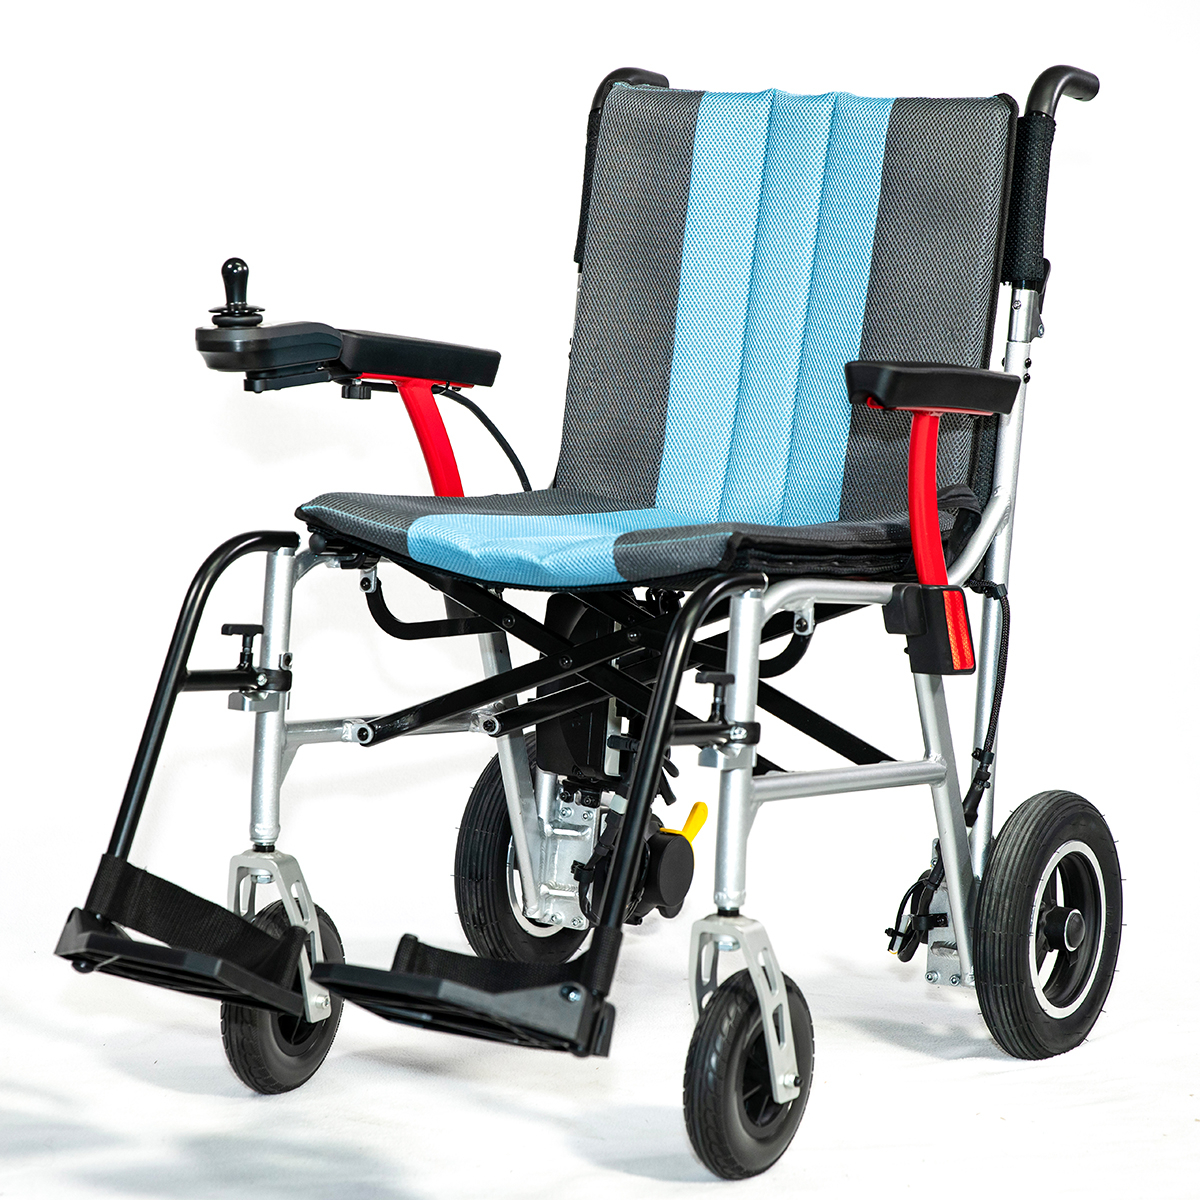 Featherweight Power Chair - only 33 lbs.